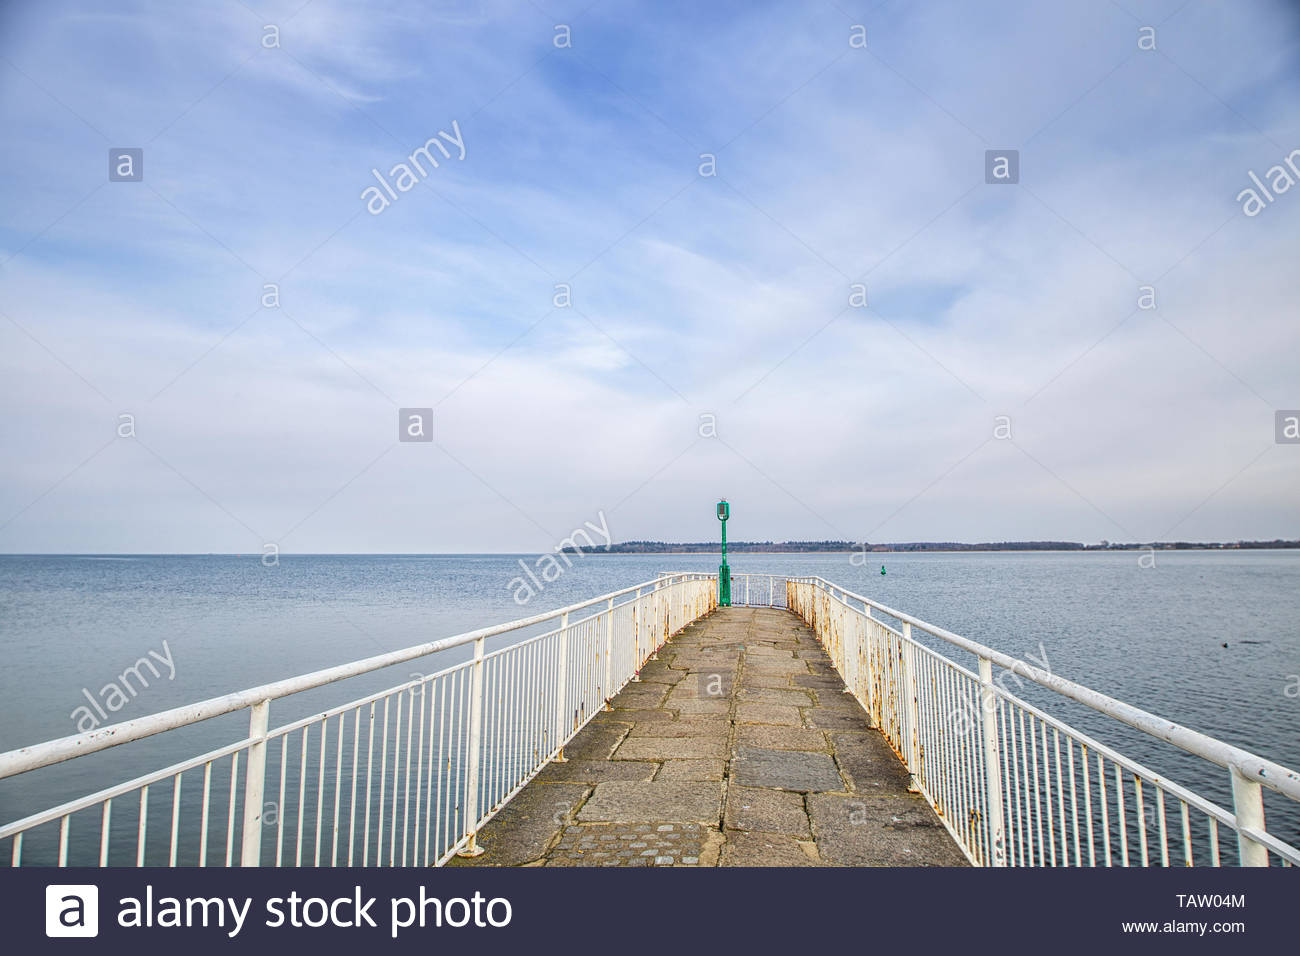 View to the sea from the mole in Greifswald, Germany - Stock Image